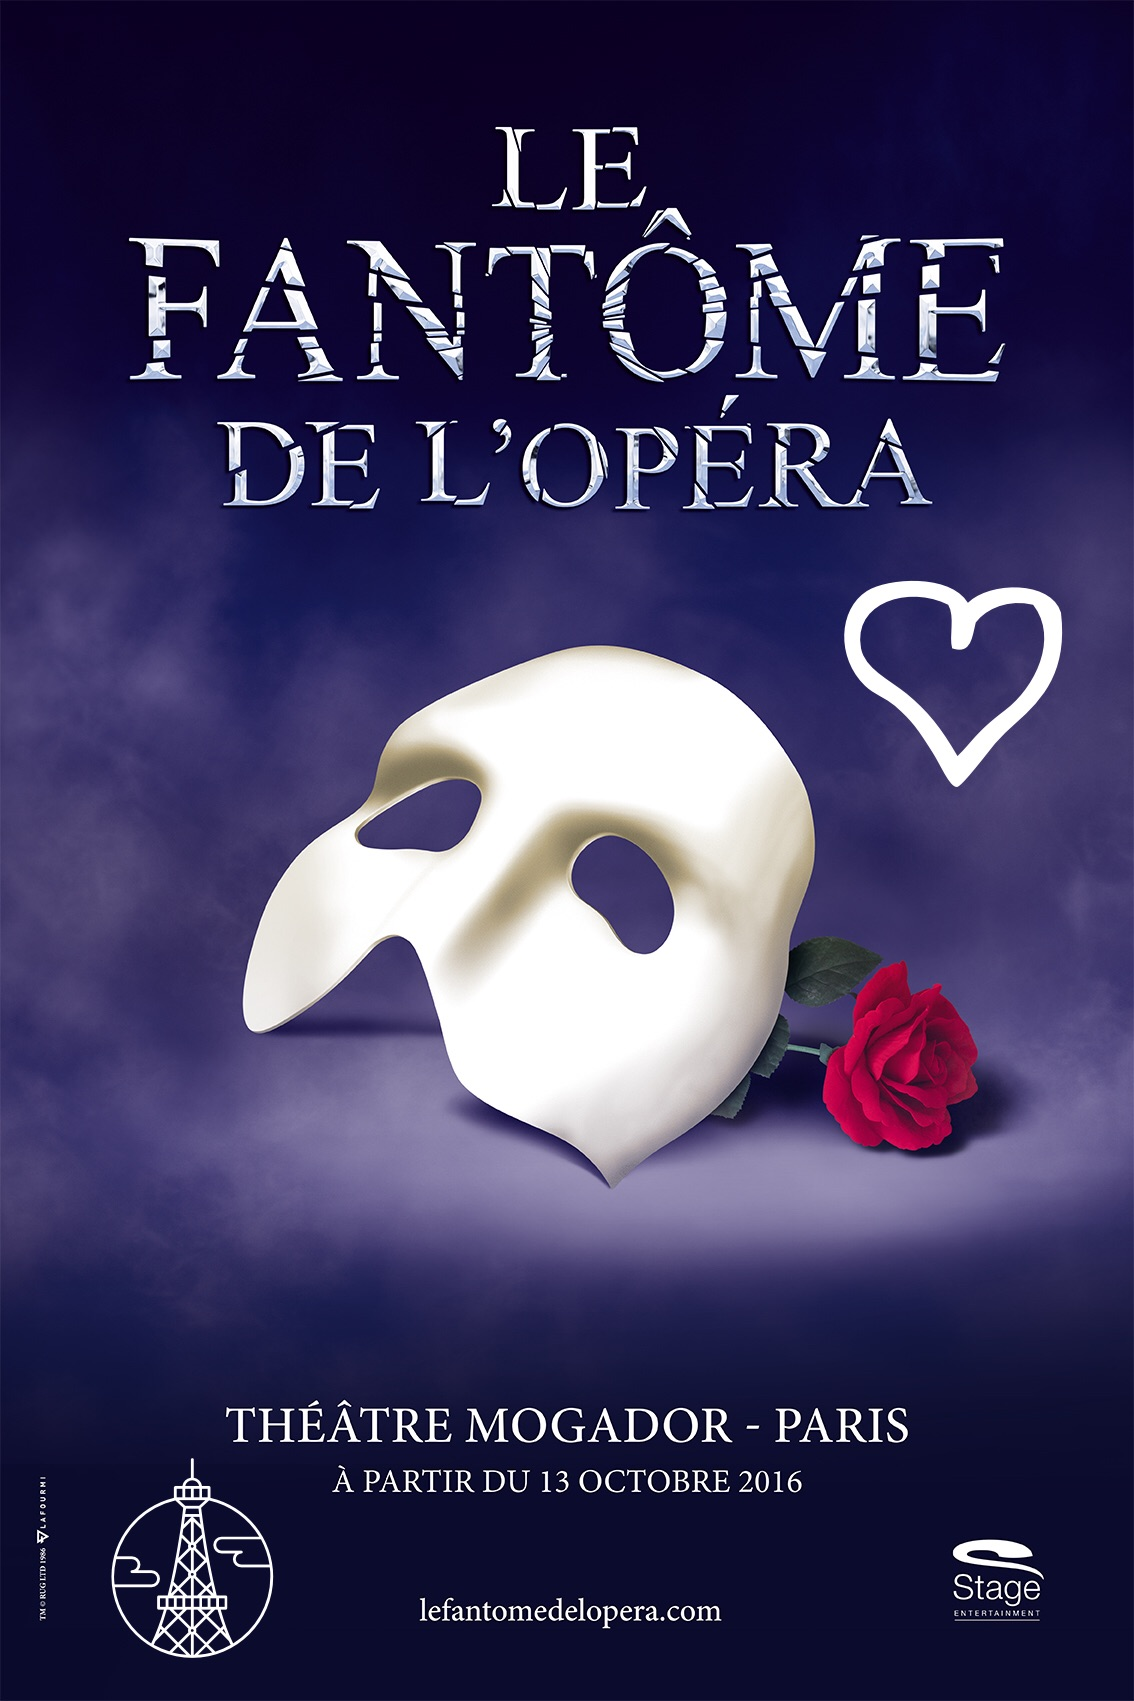 Le Fantome de l opéra affiche comédie musicale culte à partir du 13 octobre 2016 Théâtre Modagor Paris The phantom of the opera musical blog usofparis